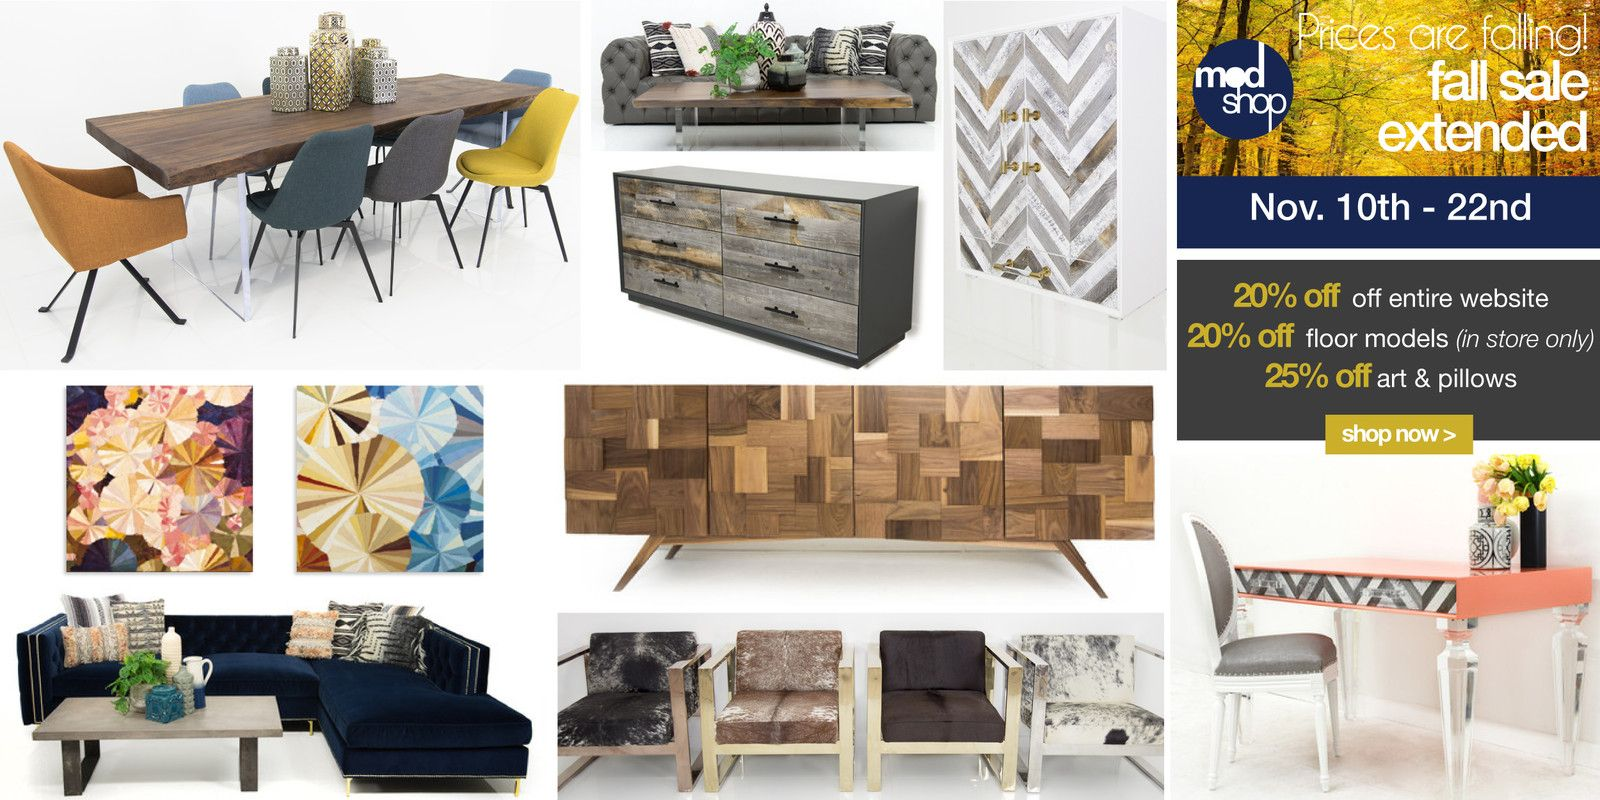 Modshop just opened in design district dallas a modern furniture store showcasing sofas sectionals dining tables chairs beds office furniture